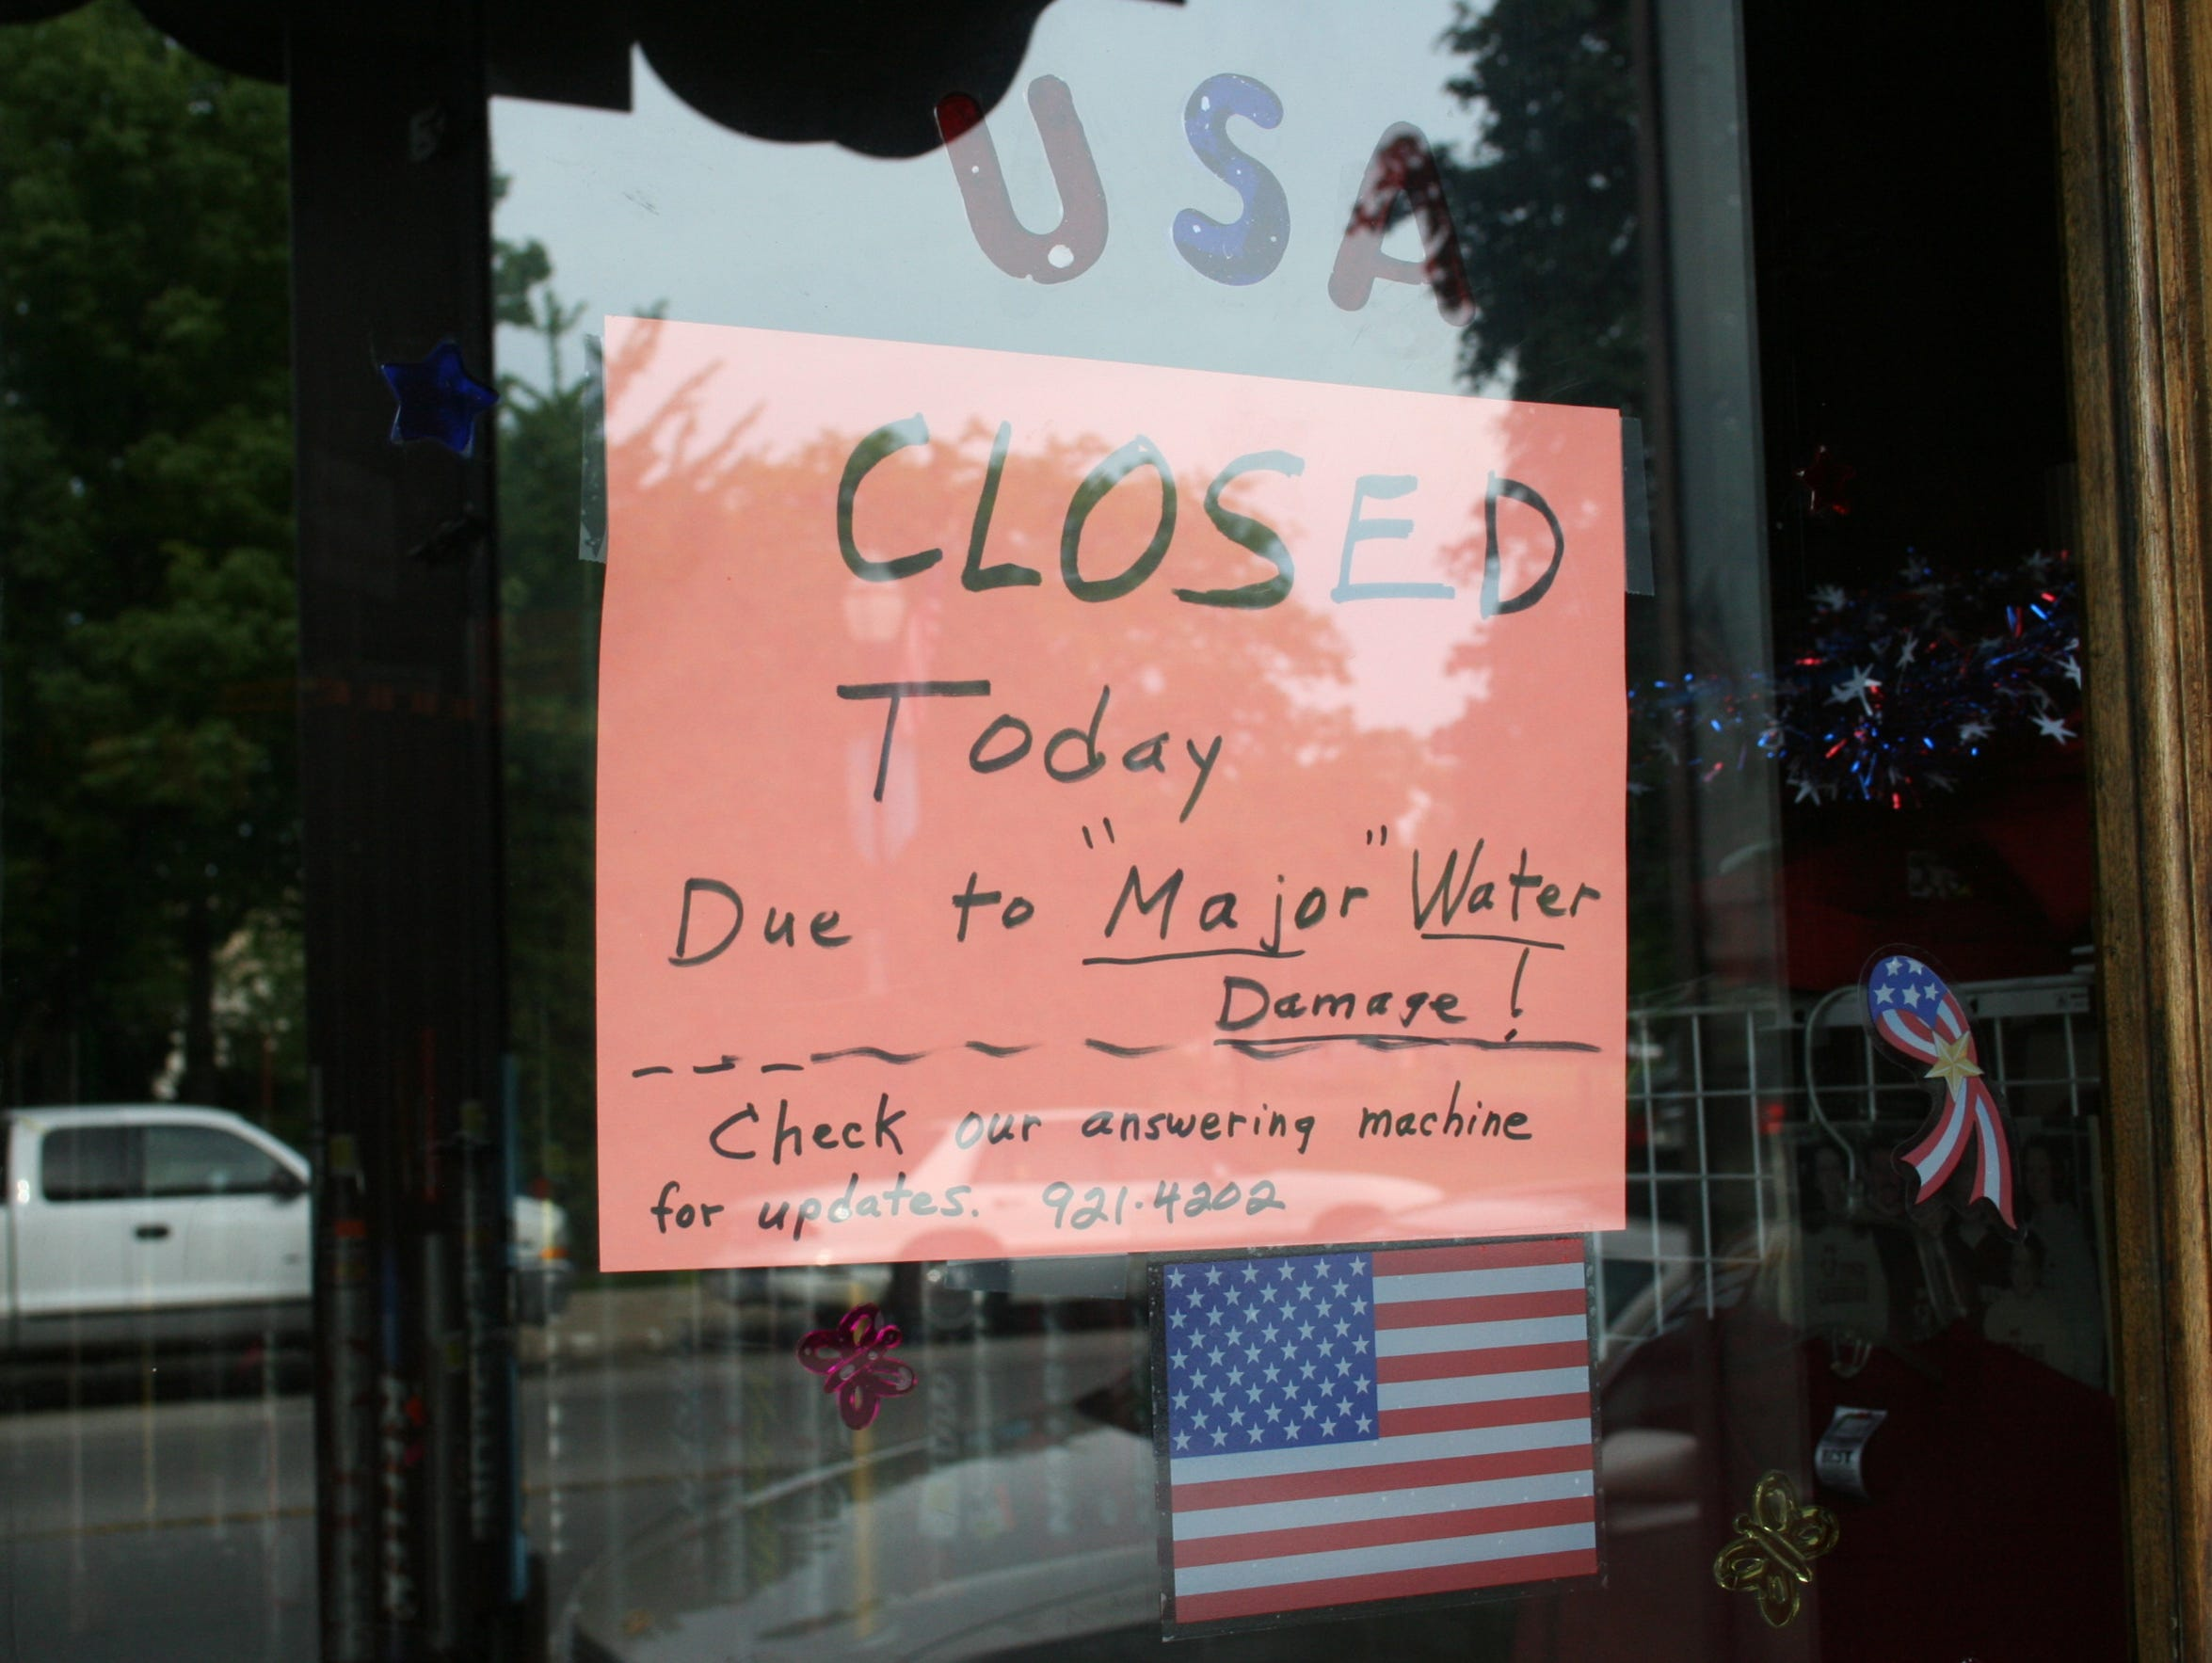 Flooding temporarily closed Jack's Team Sports at 179